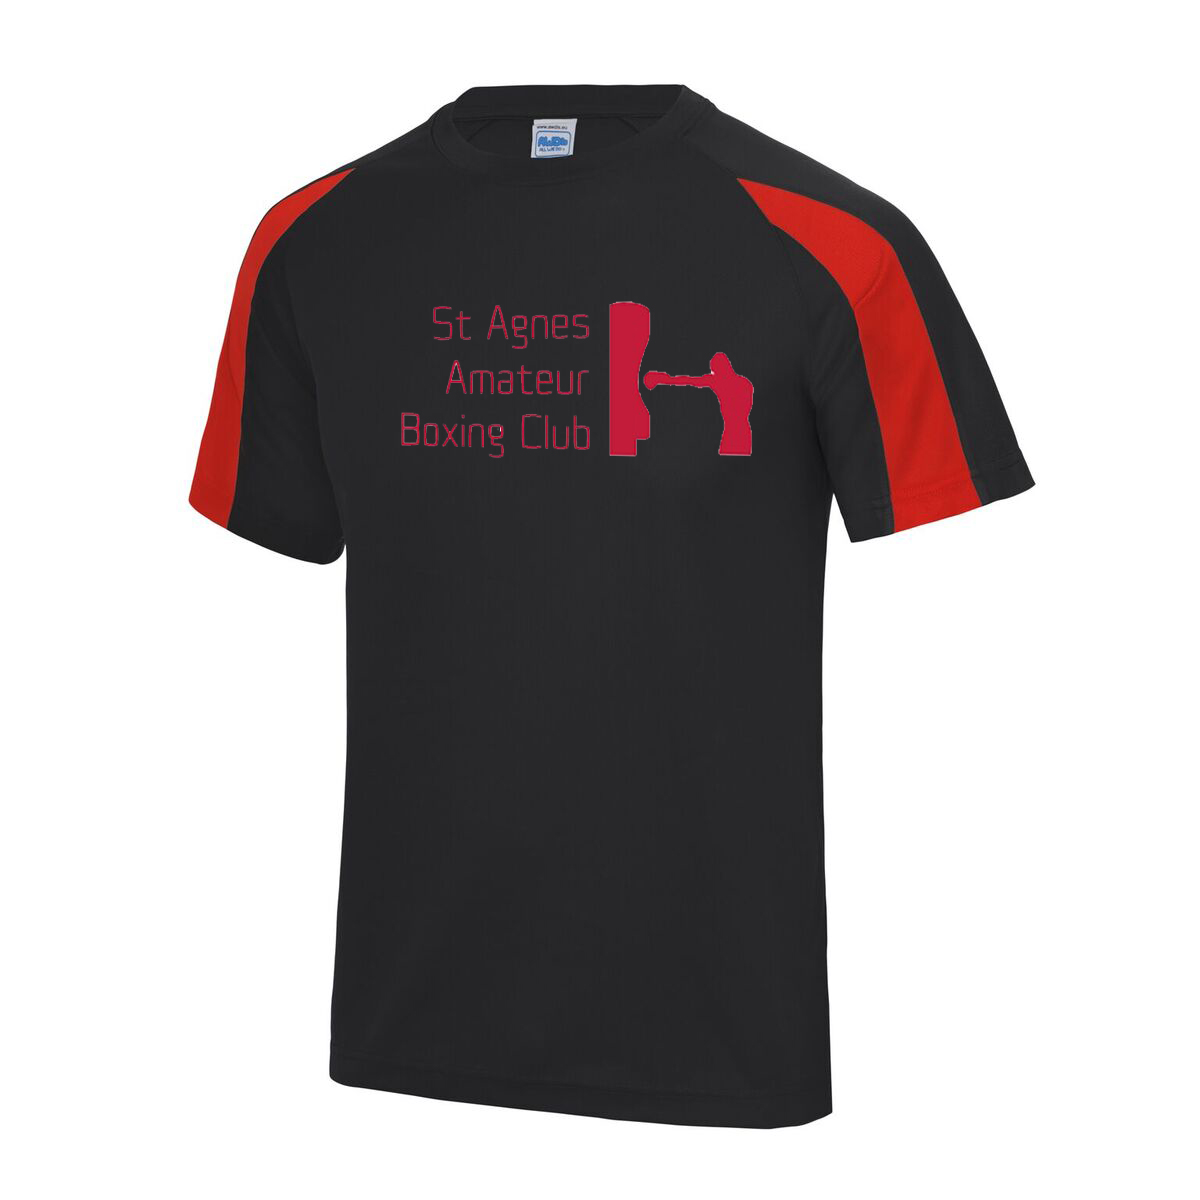 St Agnes ABC Club Tee Shirt